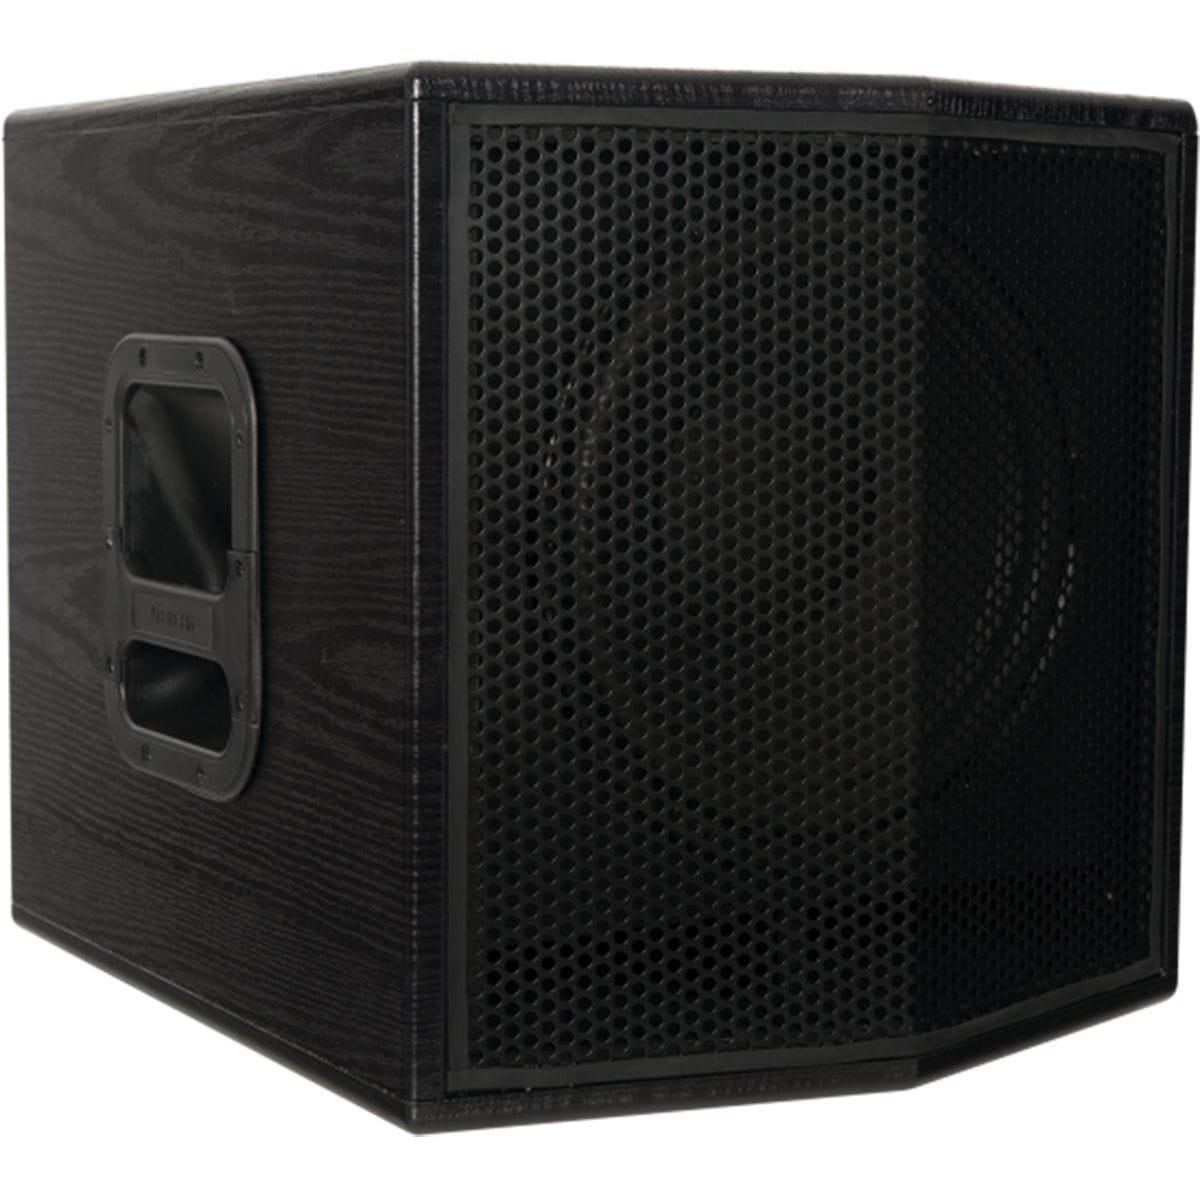 Caixa Subgrave Ativa Ps12swa 12 Pol. Classe D 500w Rms 4r Frahm